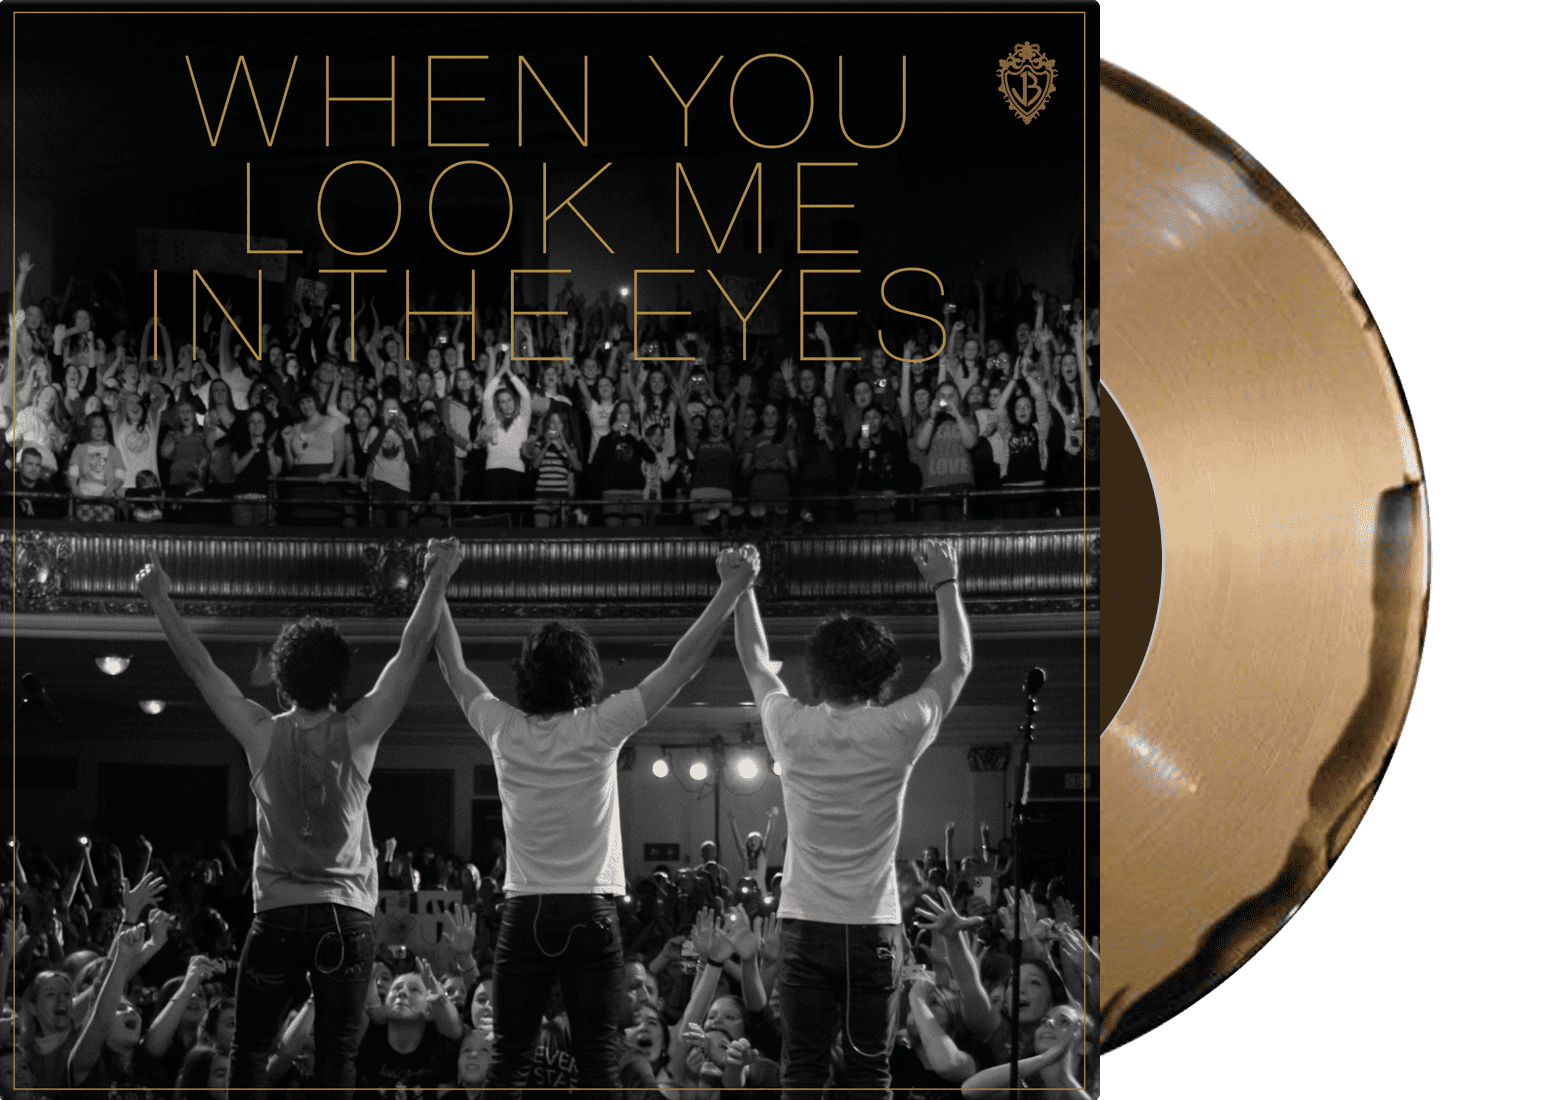 "When You Look Me In The Eyes 7"" Single - JONAS VINYL CLUB"